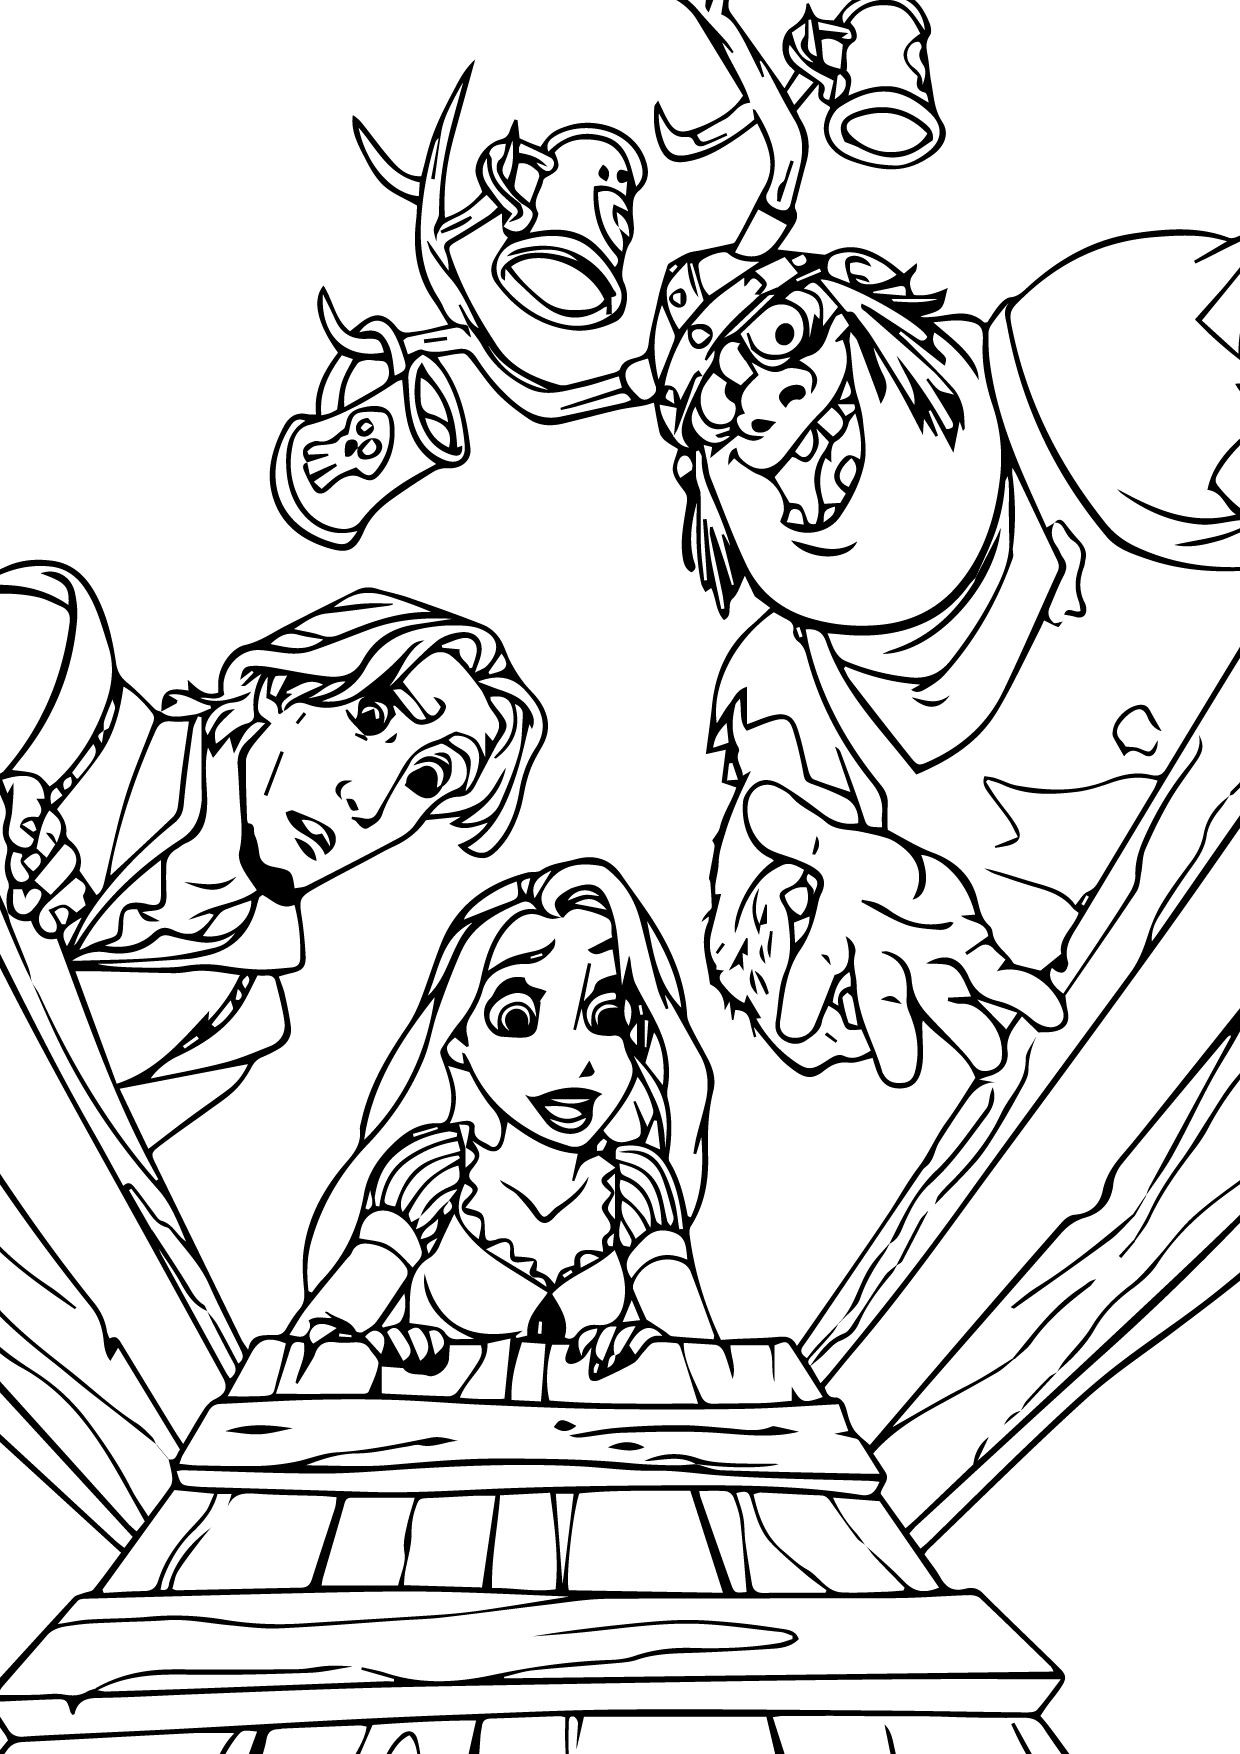 cool Coloring Page 22-09-2015_001453